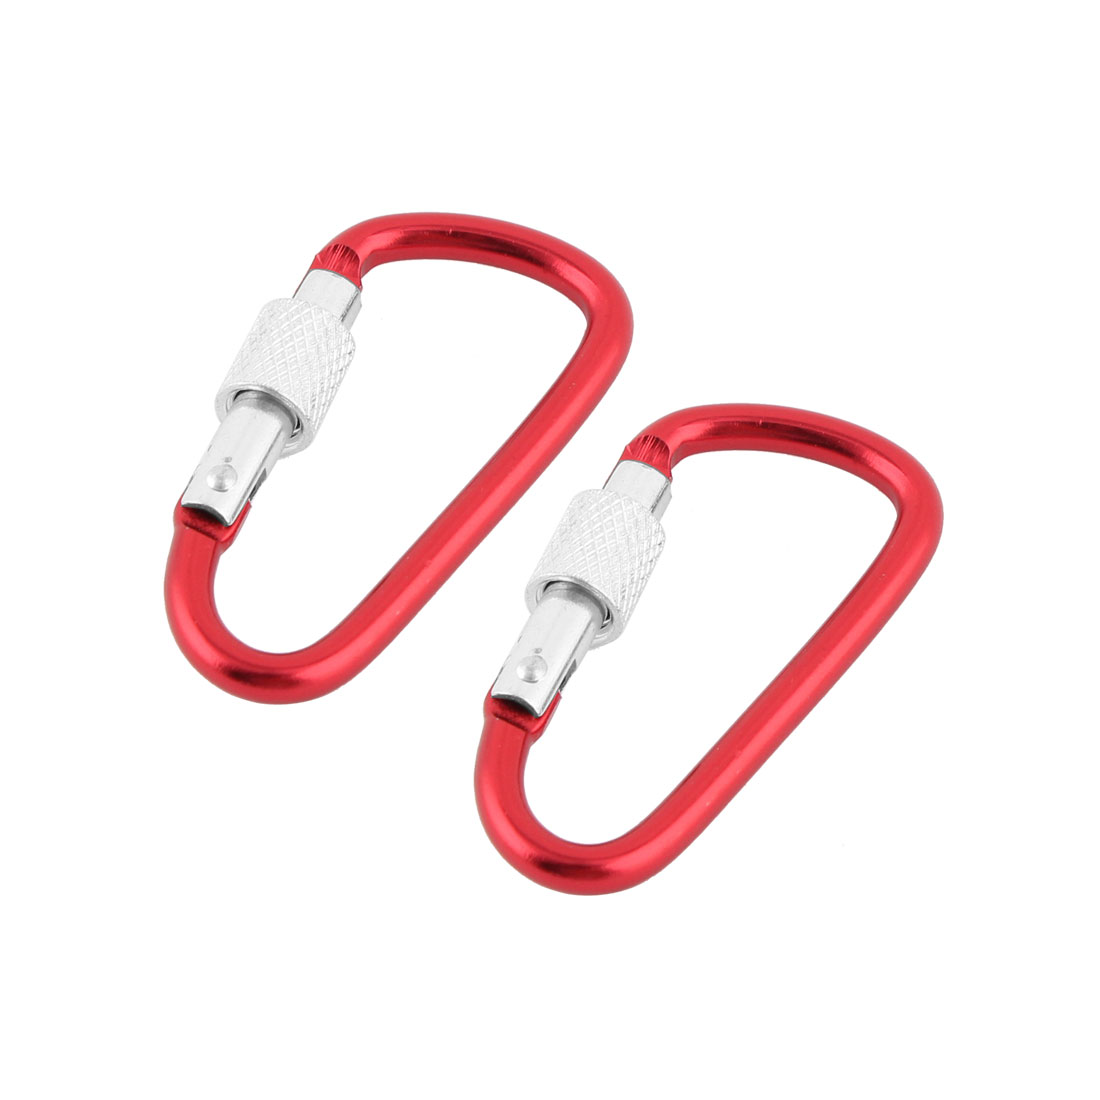 Tripper Camping Hiking Aluminium Alloy D Shaped Bag Bottle Carabiner Hook Red 2 Pcs